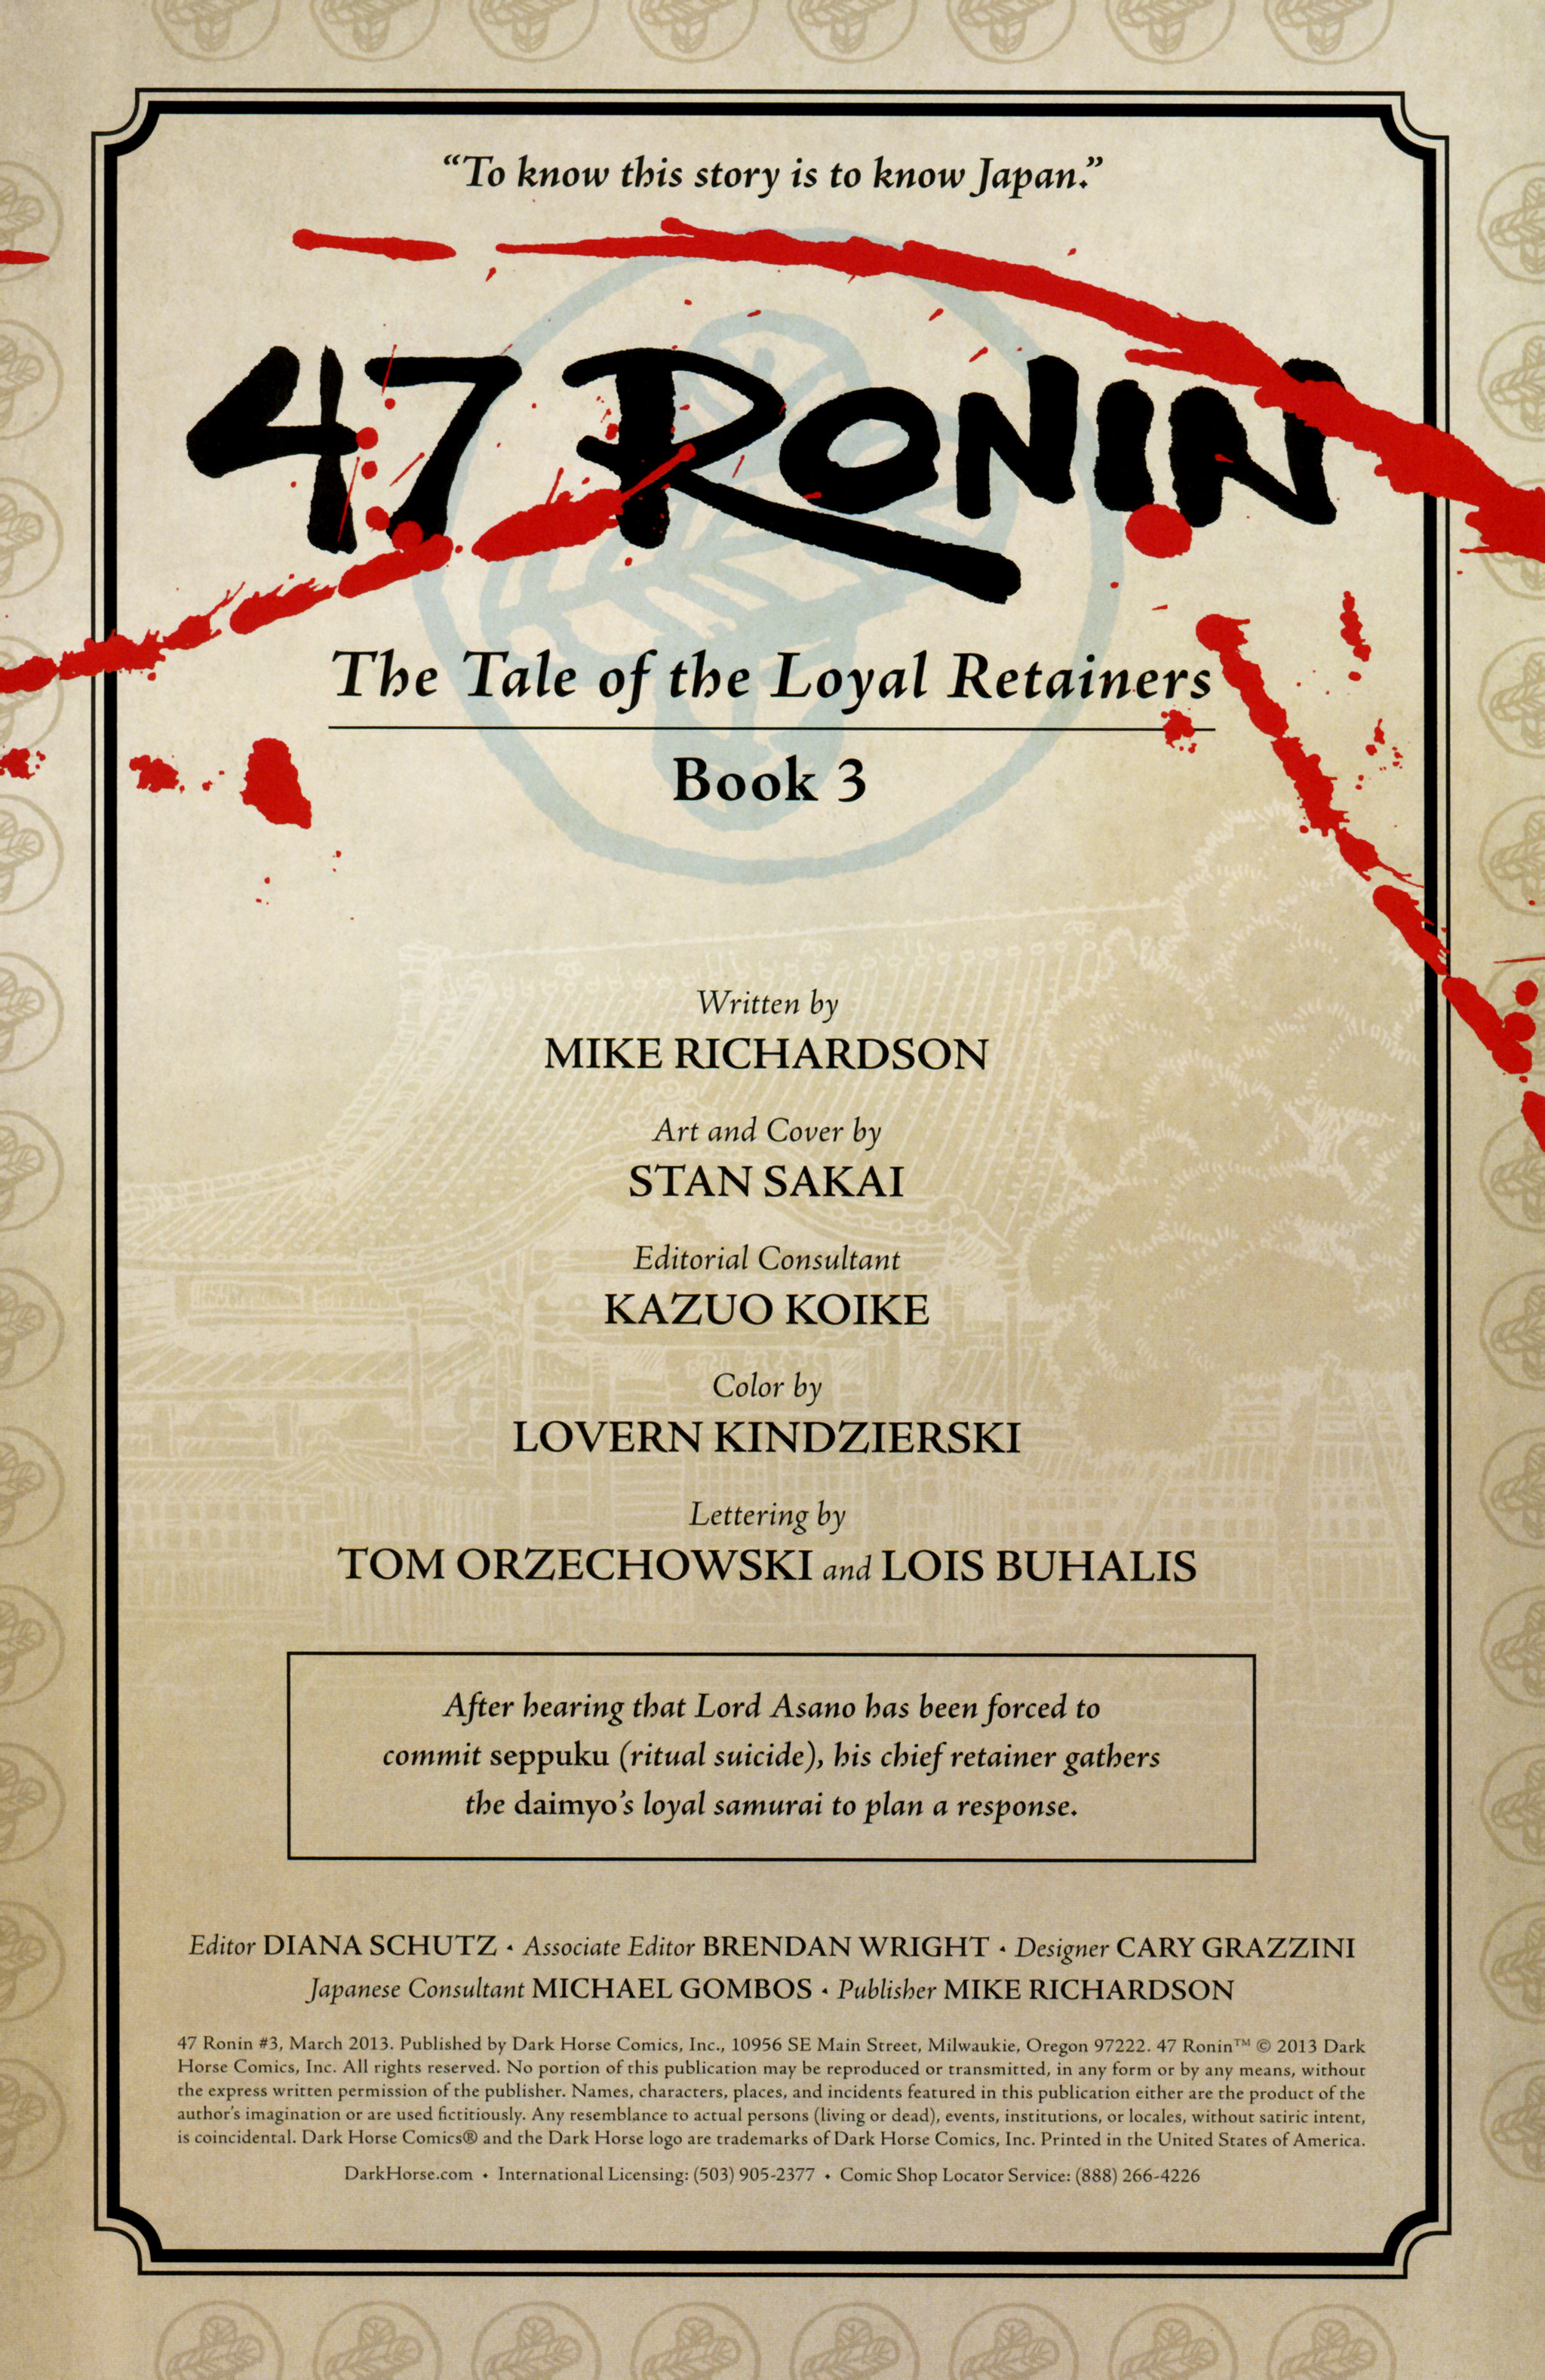 Comic 47 Ronin issue 3